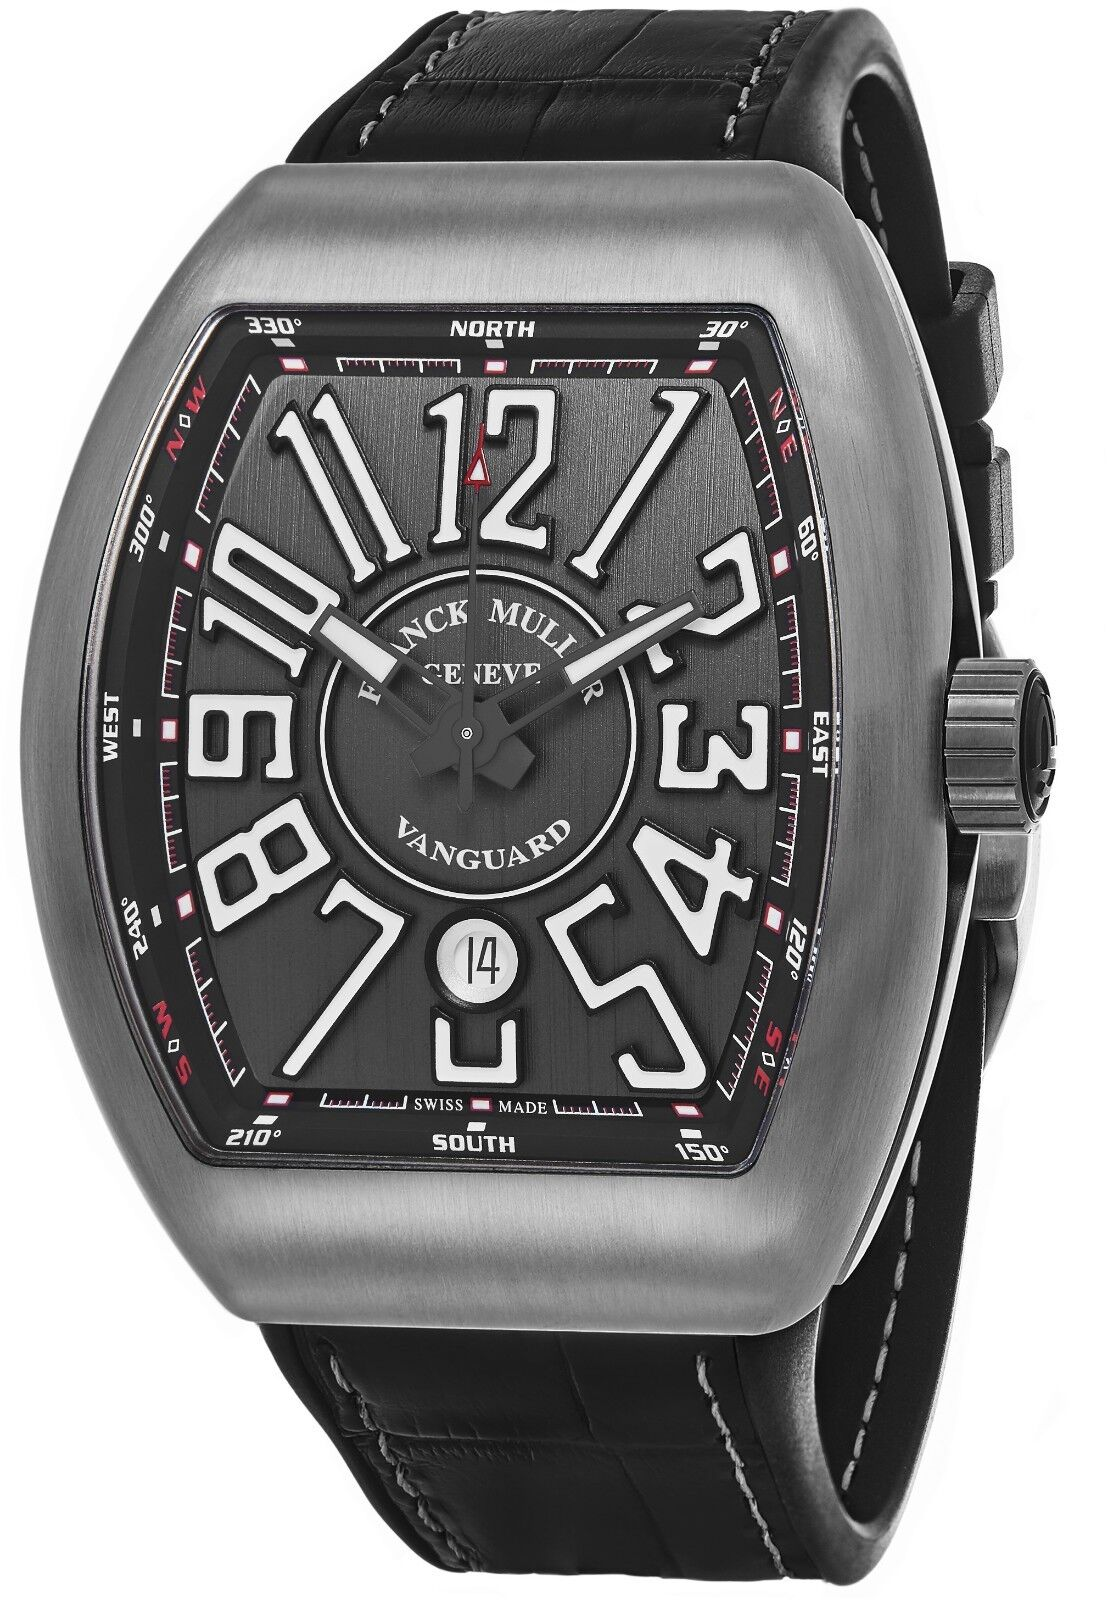 Franck Muller Men's Vanguard Black Leather Strap Automatic Watch 45SCTTBRNRGRYWH - watch picture 1